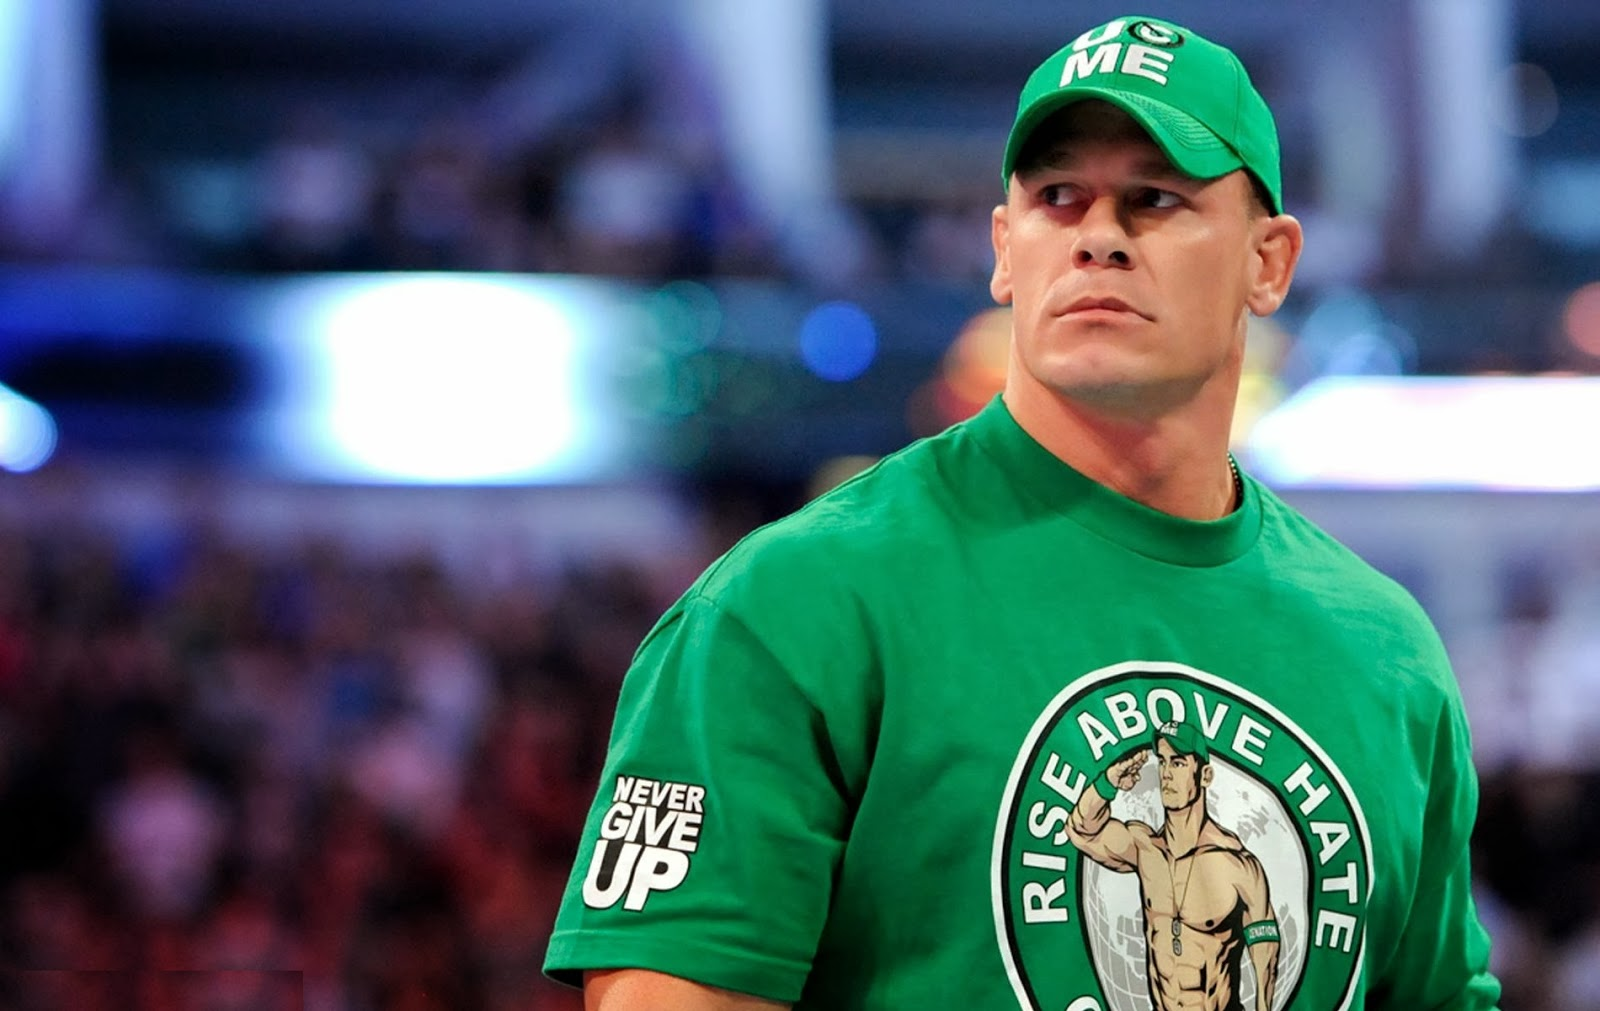 john cena hd wallpapers free download | wwe hd wallpaper free download